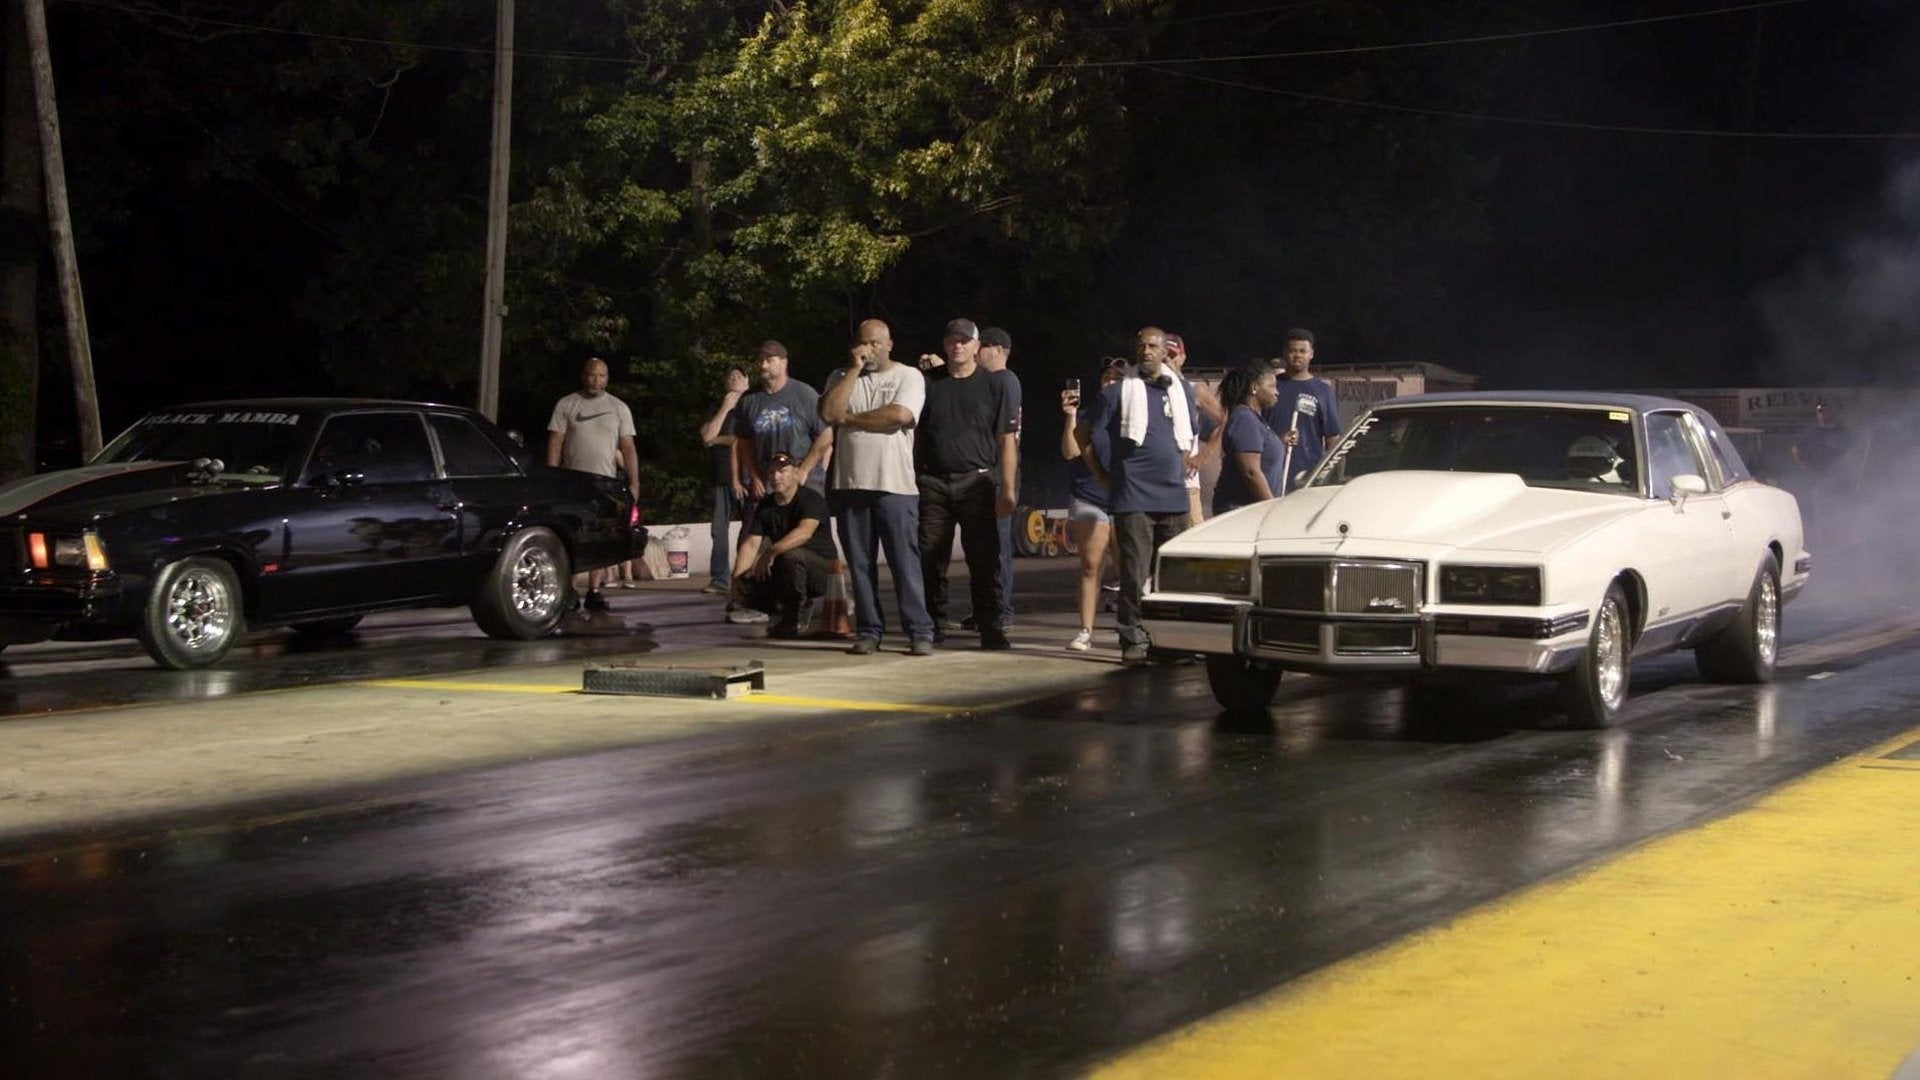 The Fastest Cars In The Dirty South: Outlawed